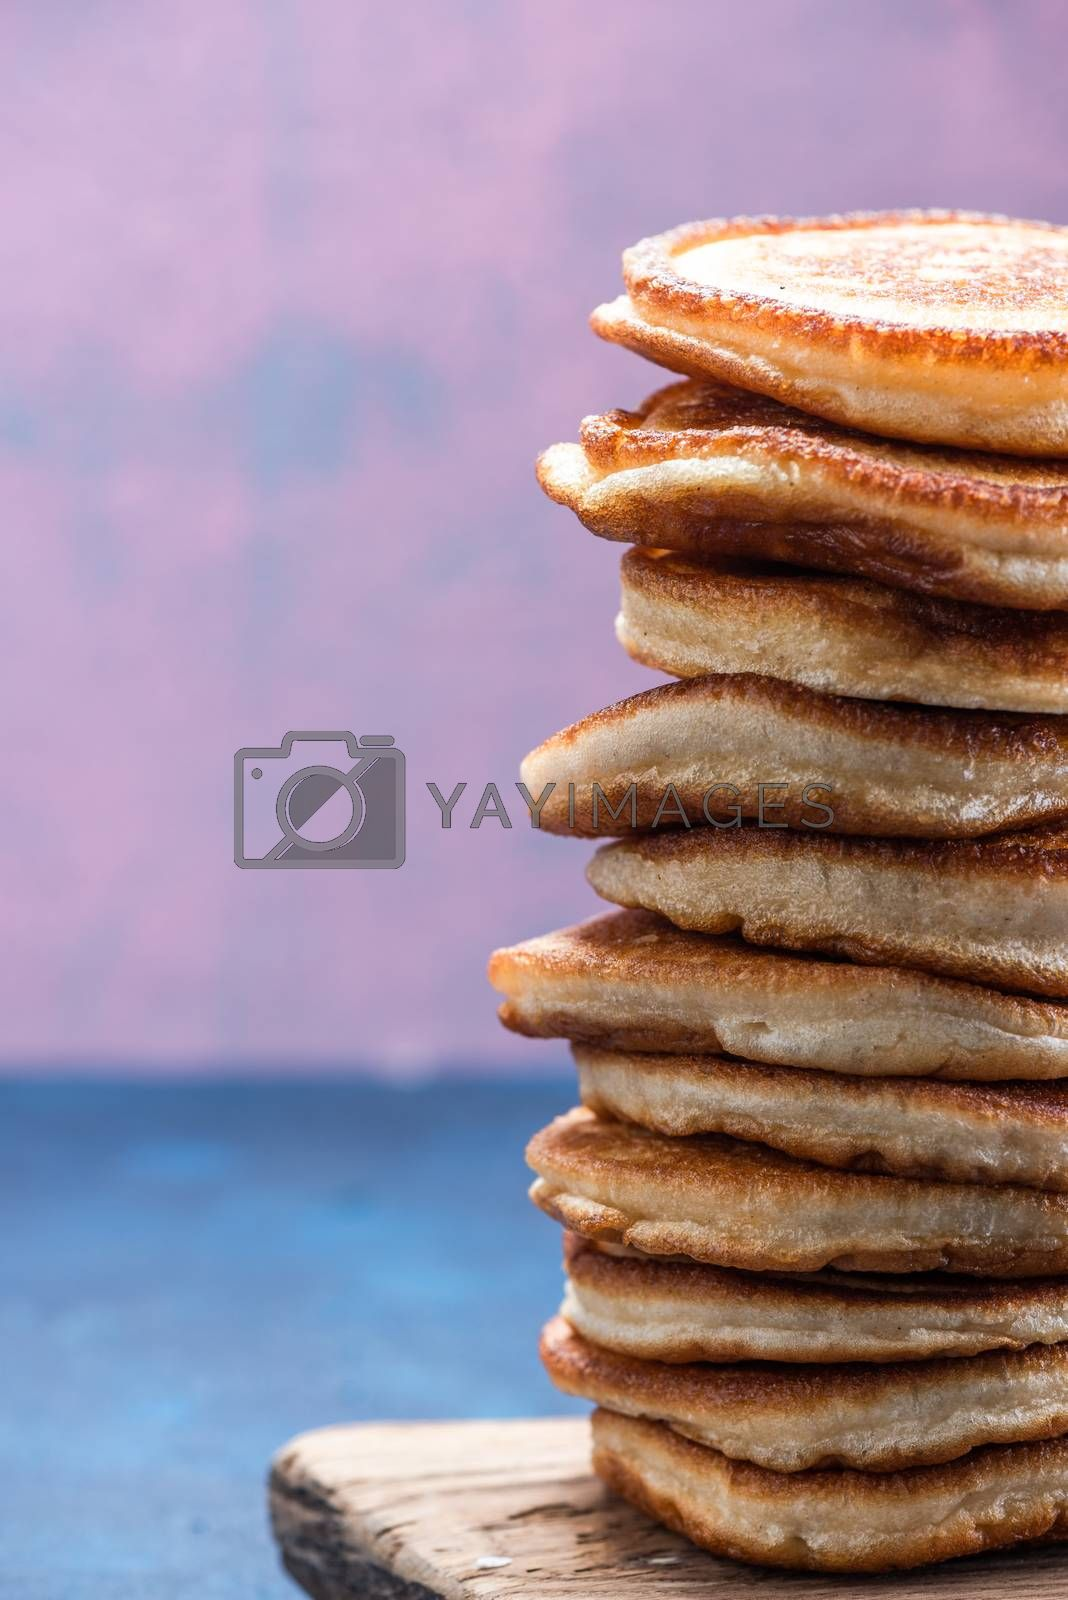 Stack Pile of Pancakes. Pancakes Tower. Copy Space.